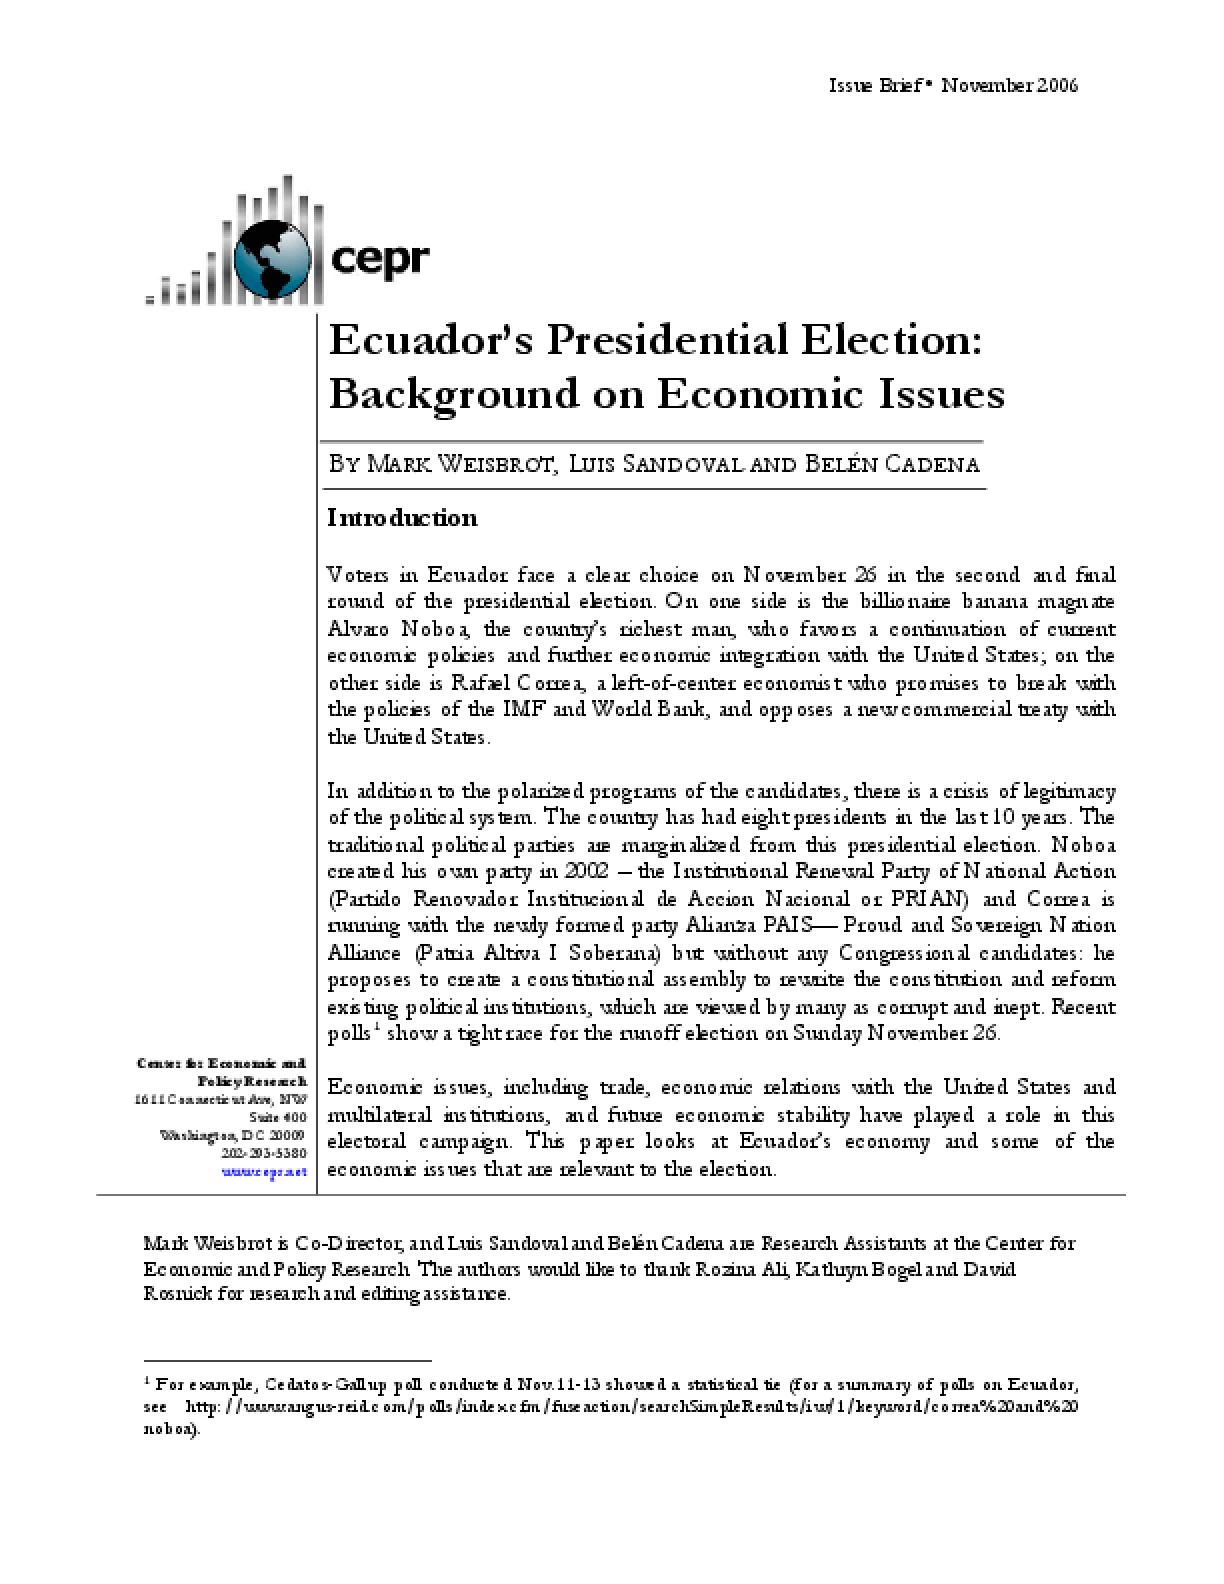 Ecuador's Presidential Election: Background on Economic Issues